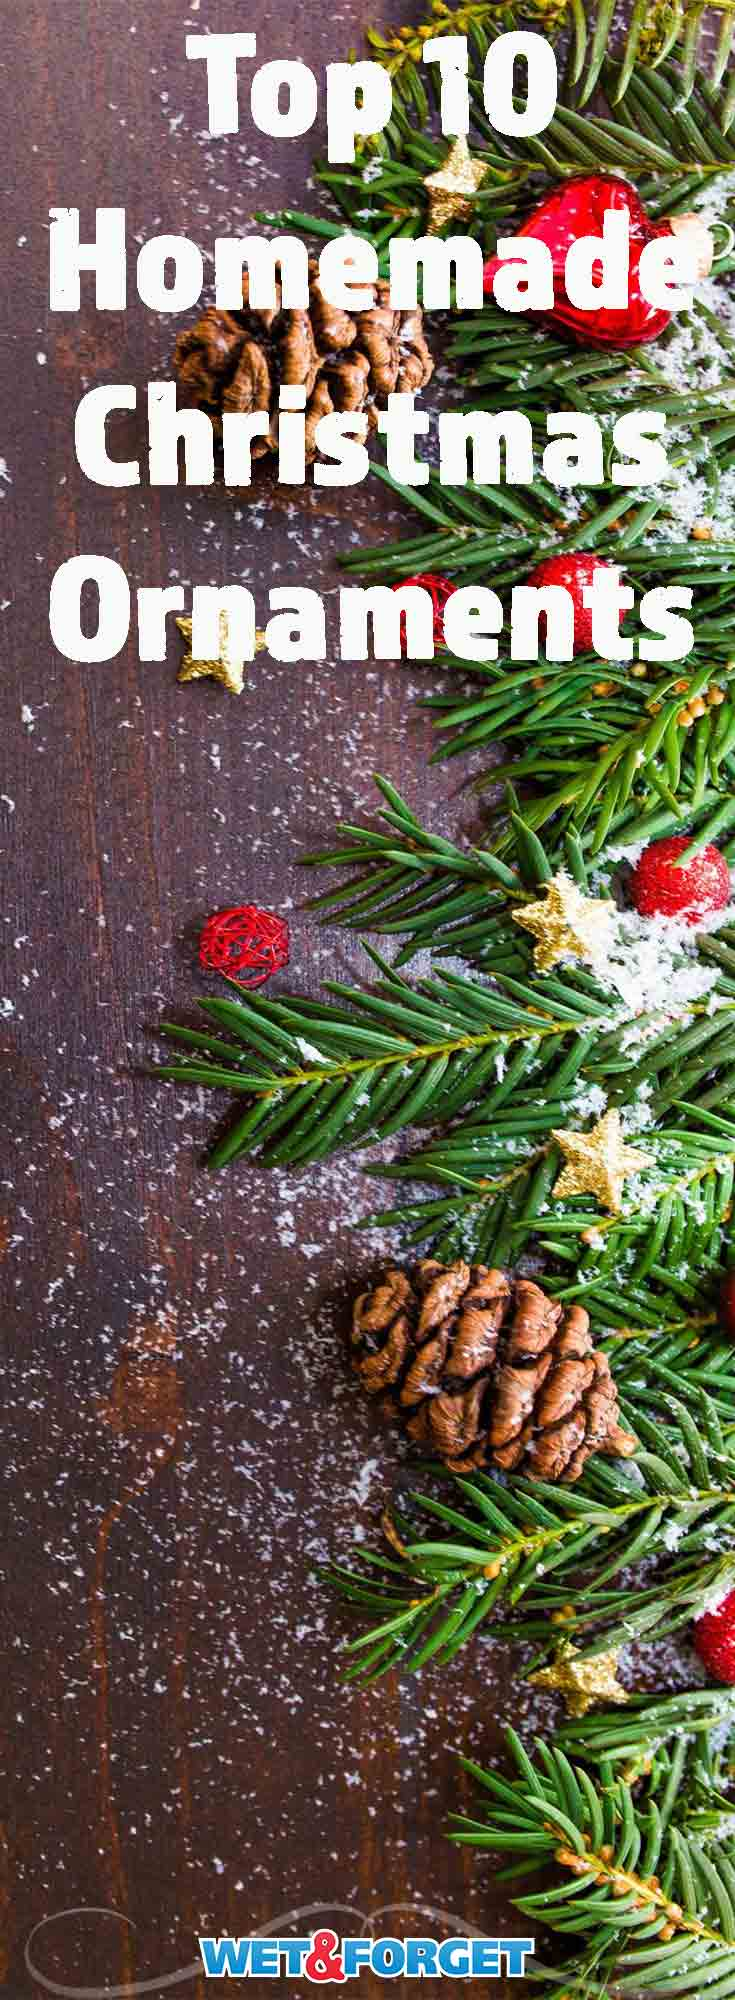 DIY ornaments are an easy way to get the kids involved with decorating for the holidays! These ornaments also make great holiday gifts for friends and family.